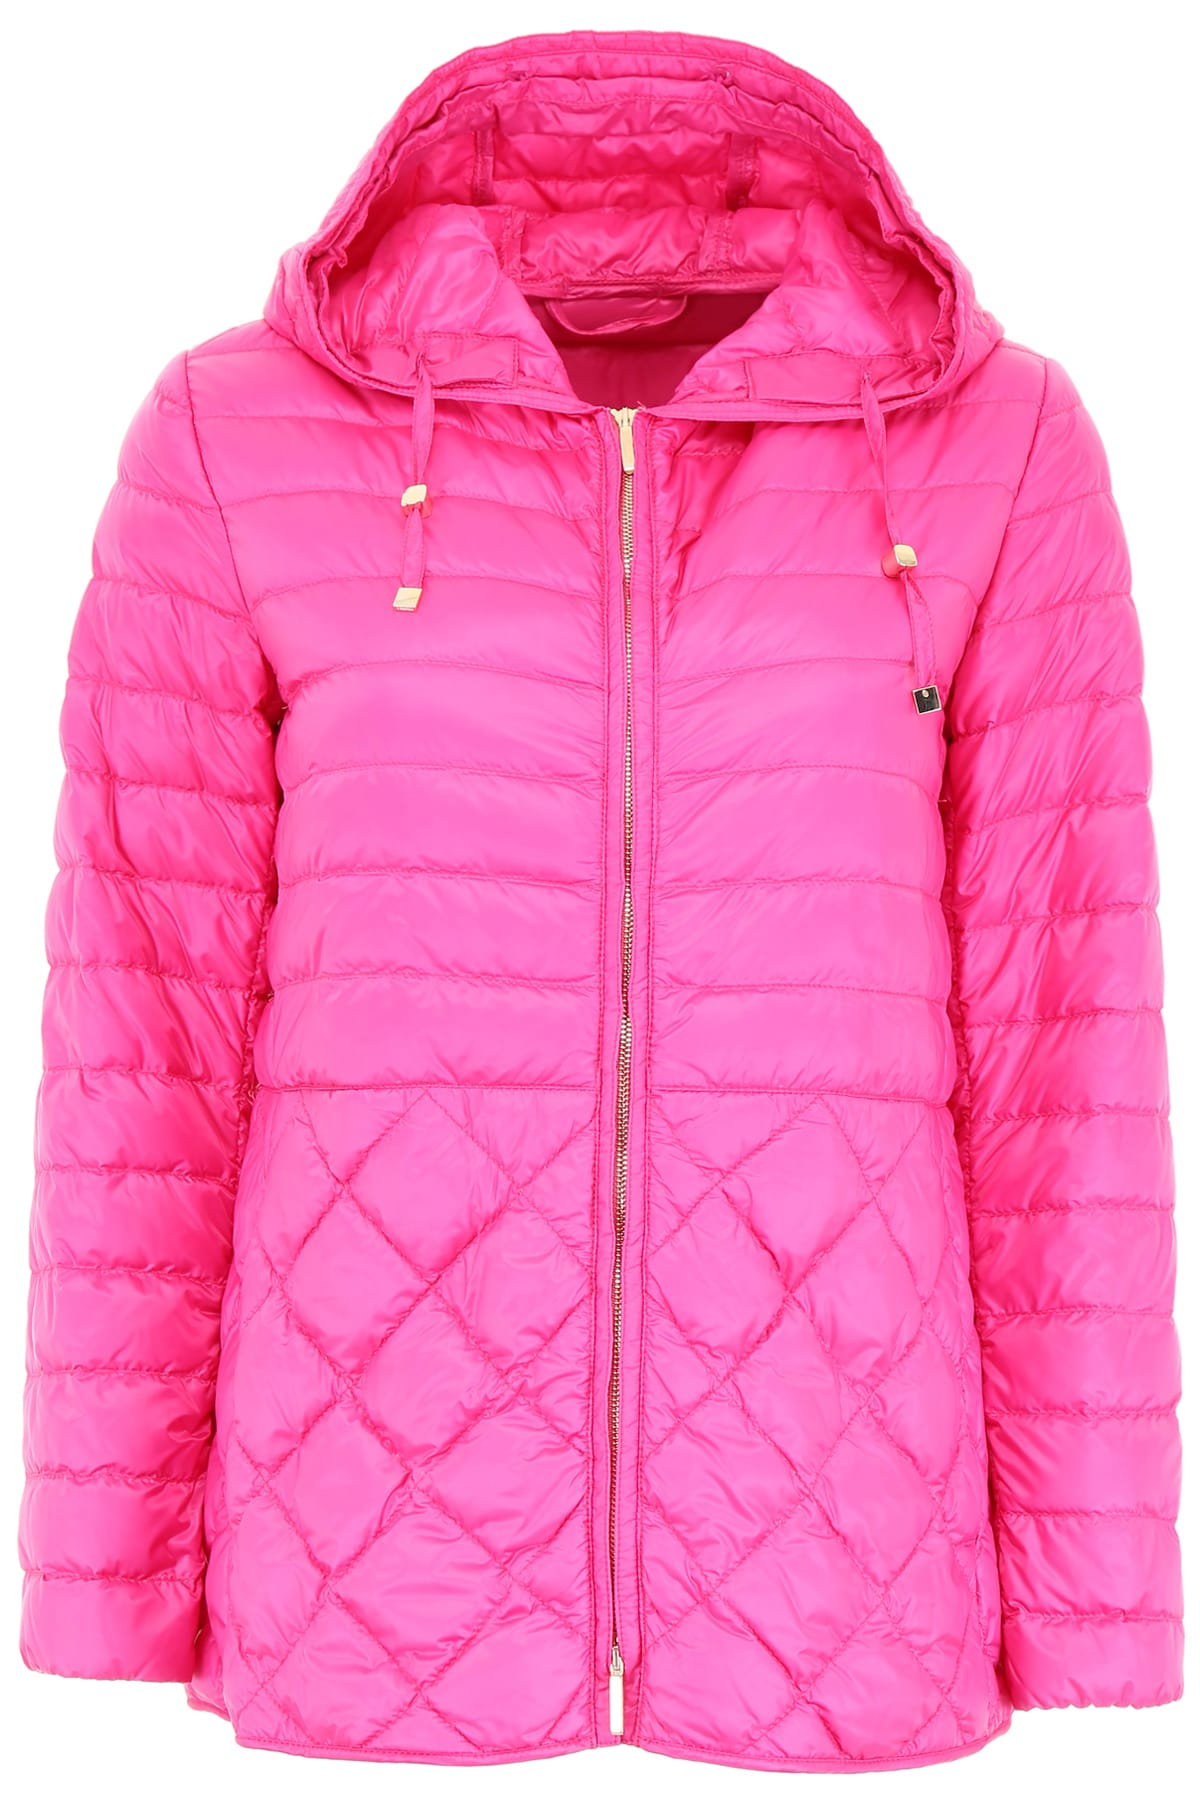 S Max Mara Here is The Cube Quilted Jacket